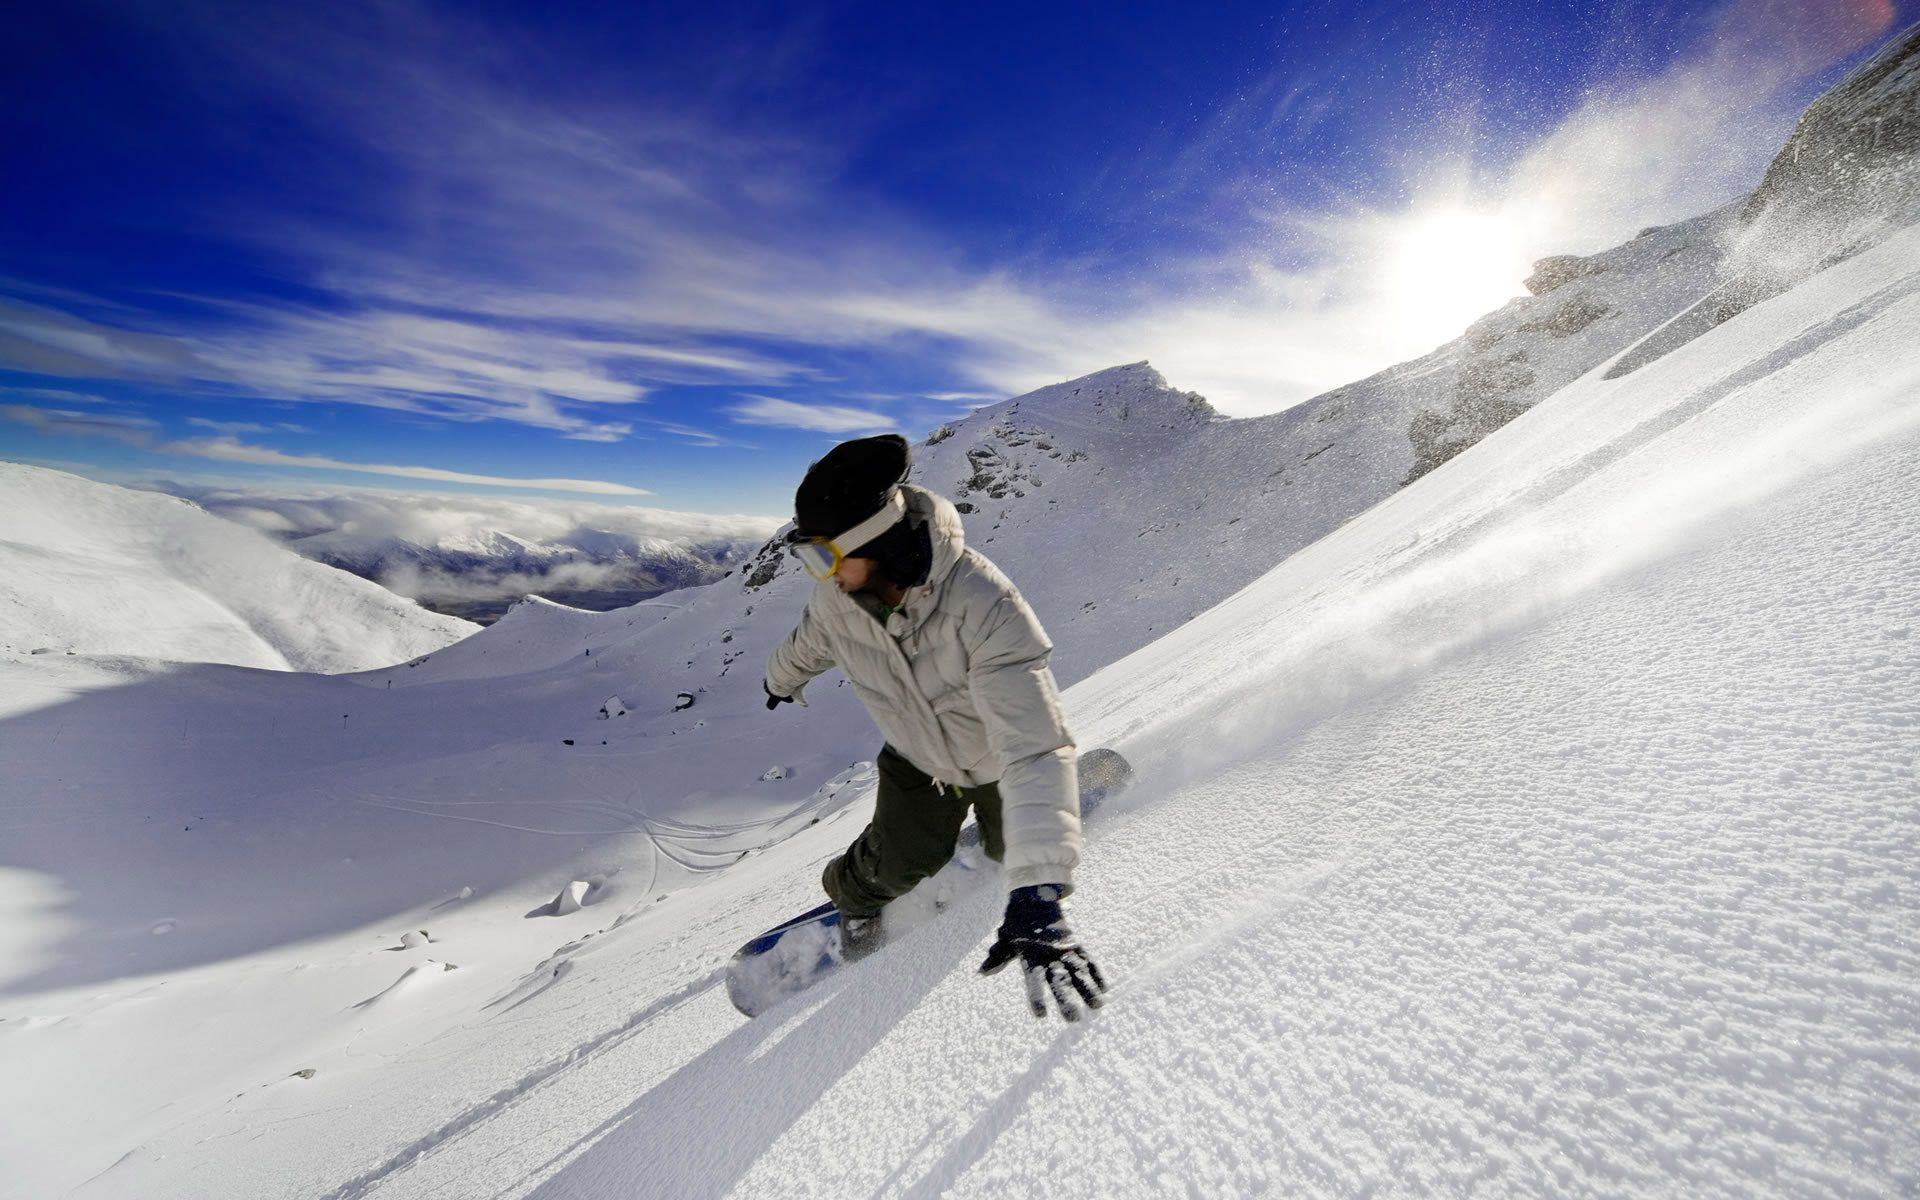 Hd Snowboarding Mountain Wallpaper Mobile Free Download